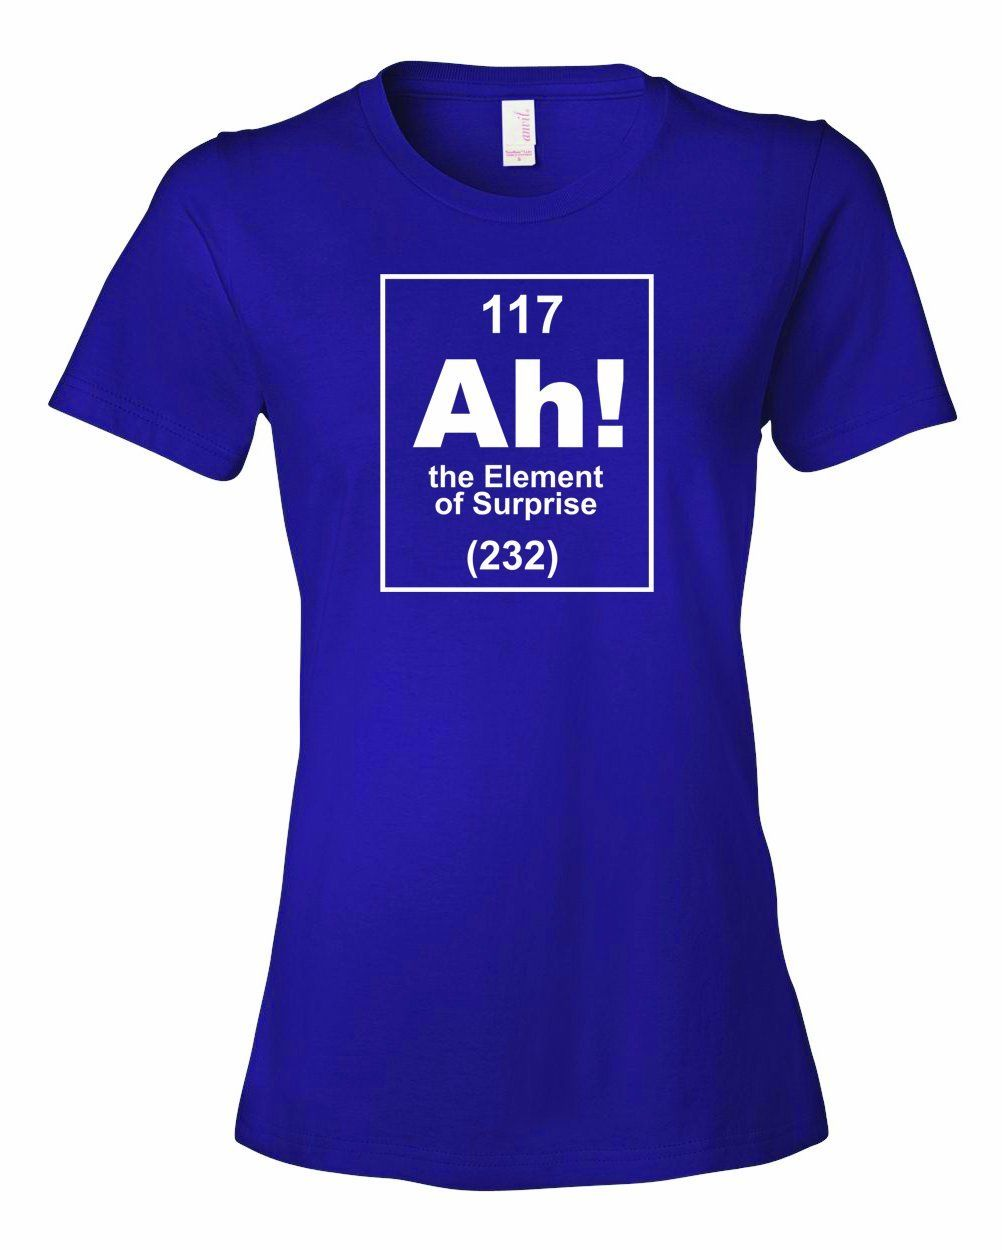 Funny science shirts